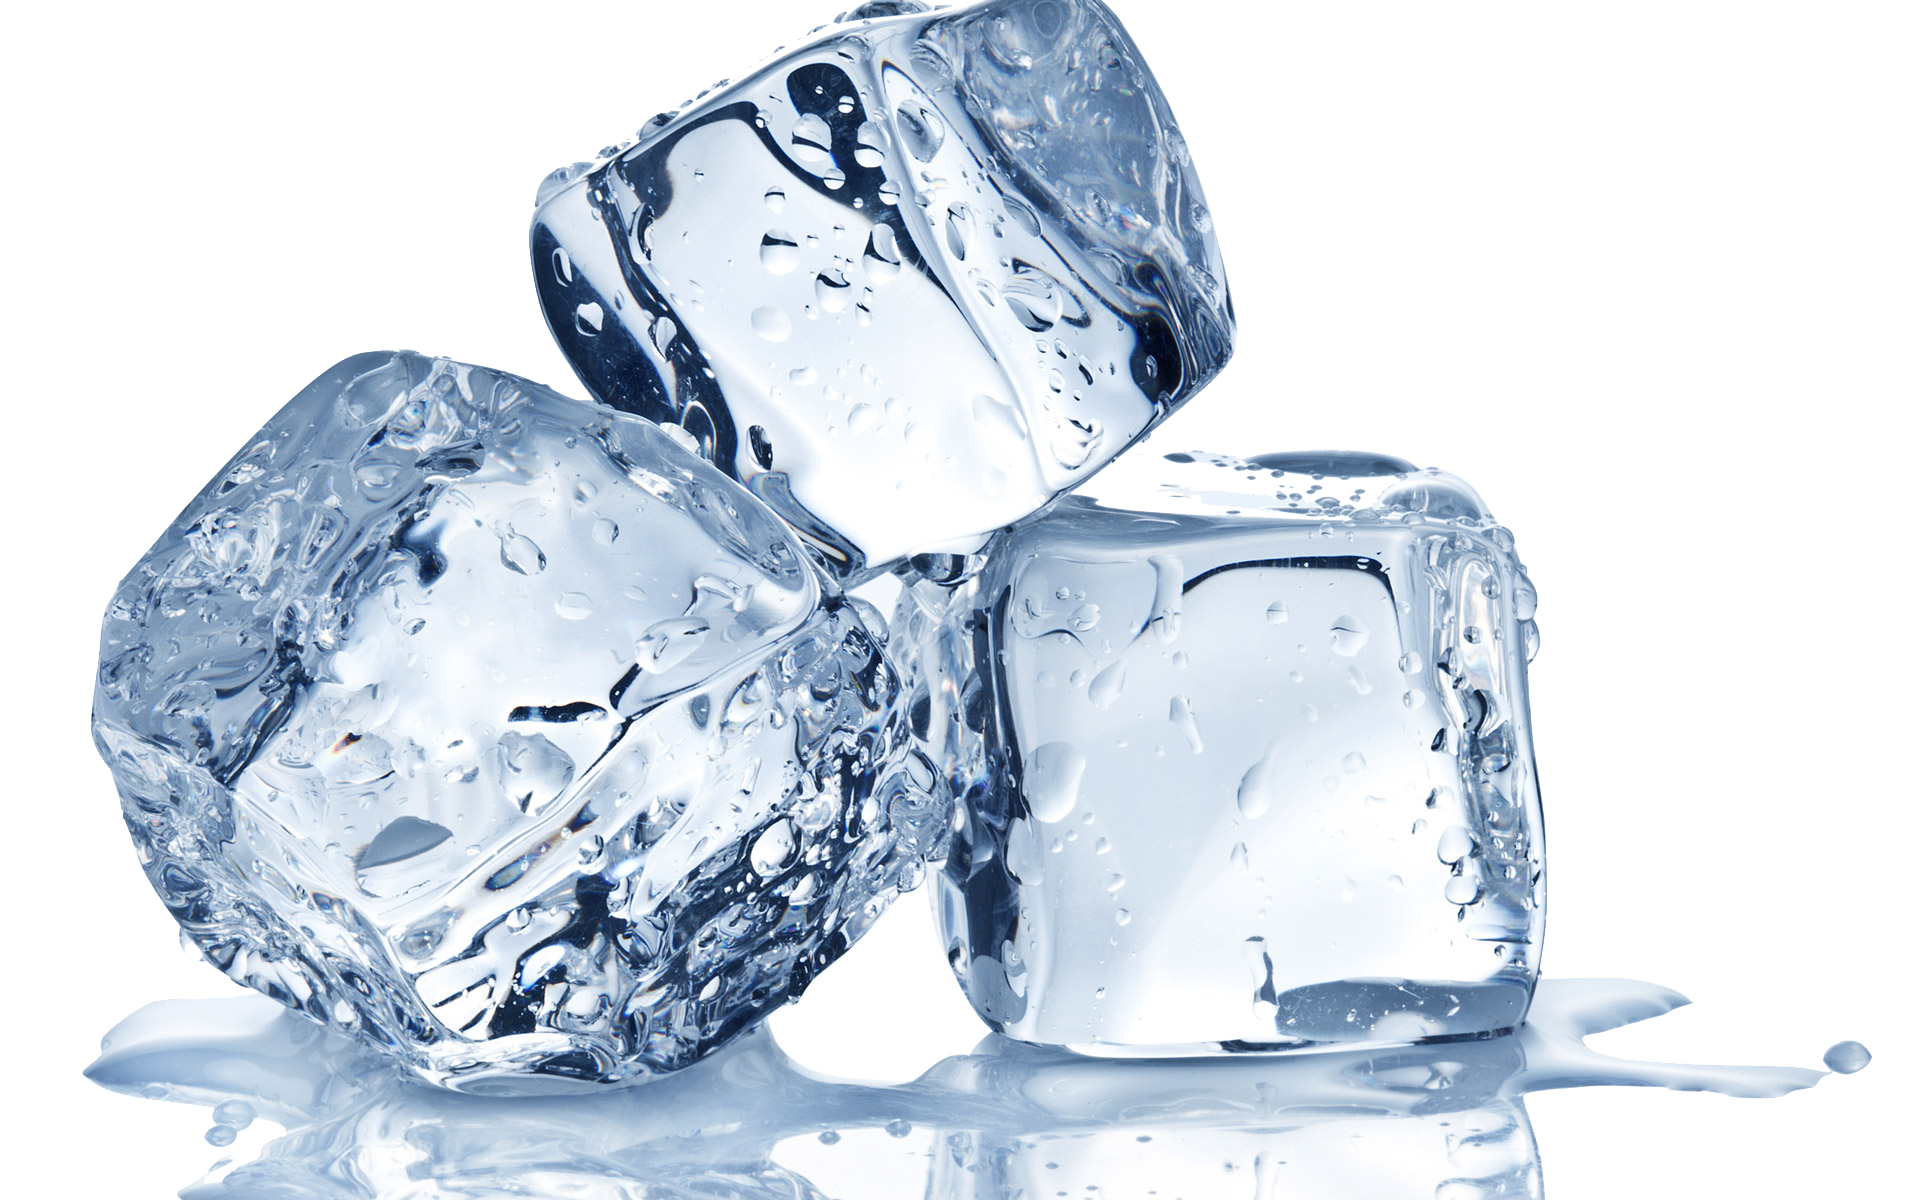 vector free download Cube food health cubes. Ice transparent